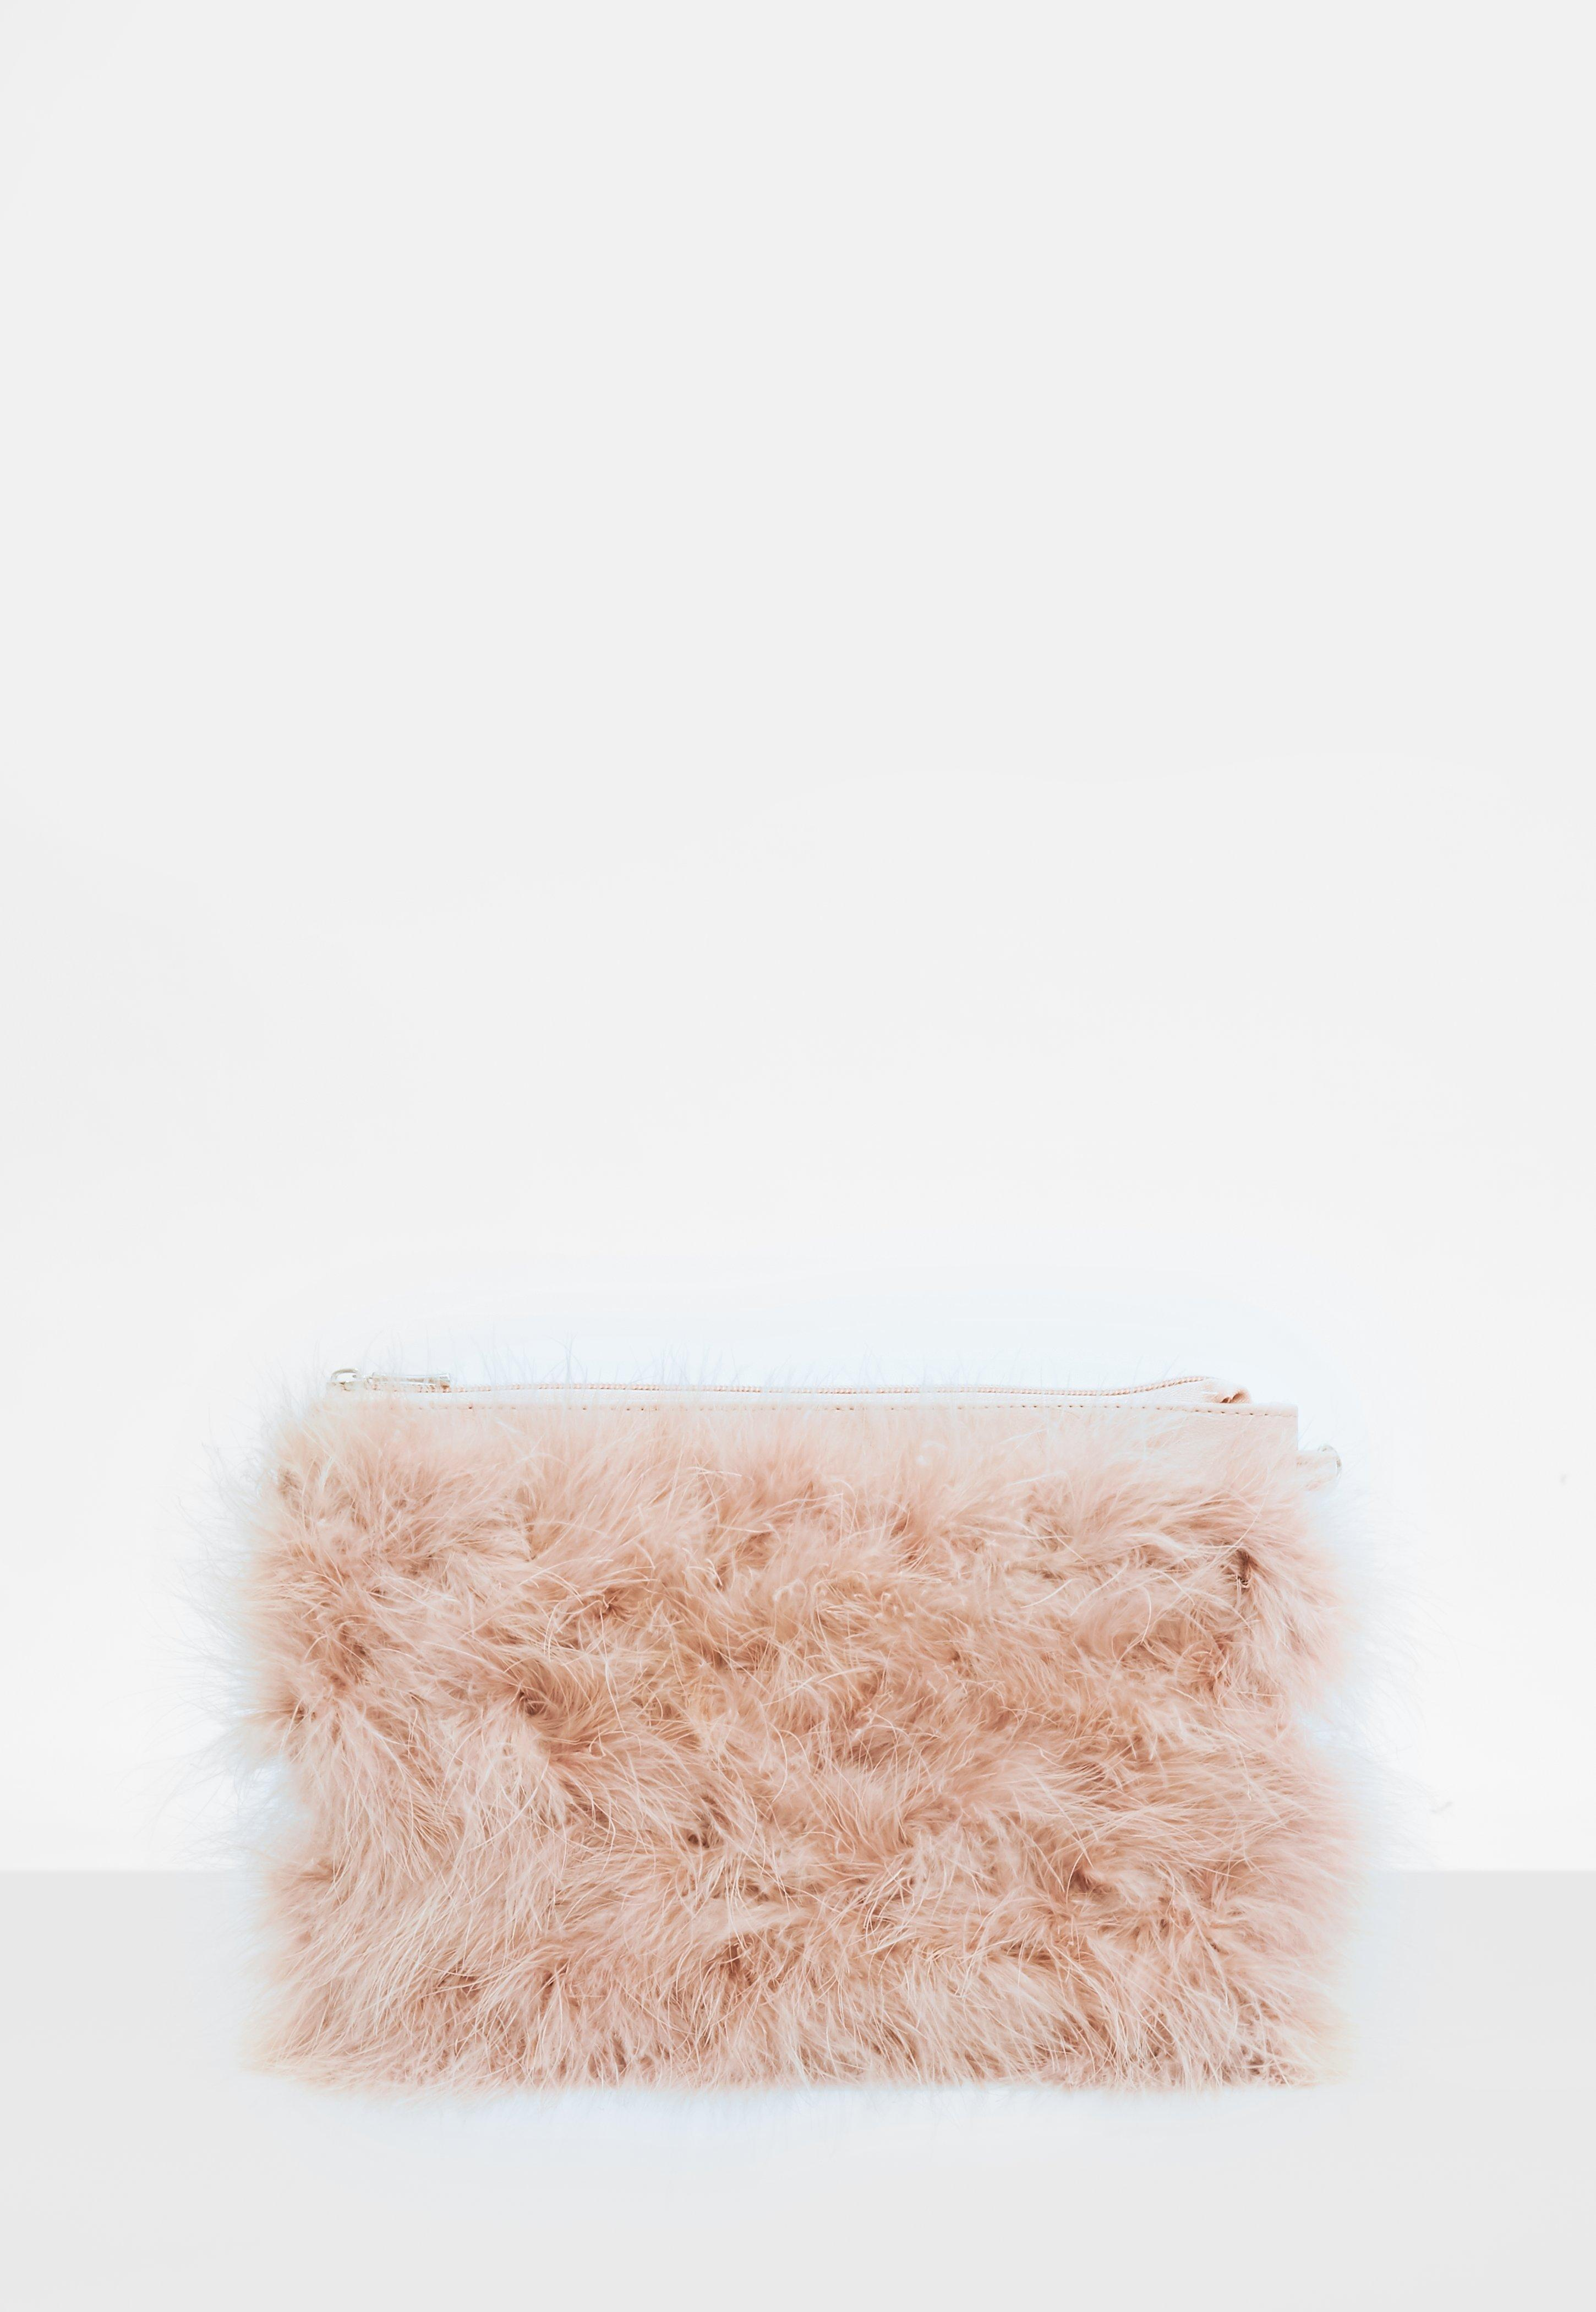 Missguided Nude Feather Clutch Bag in Natural - Lyst 63b6589d872c6